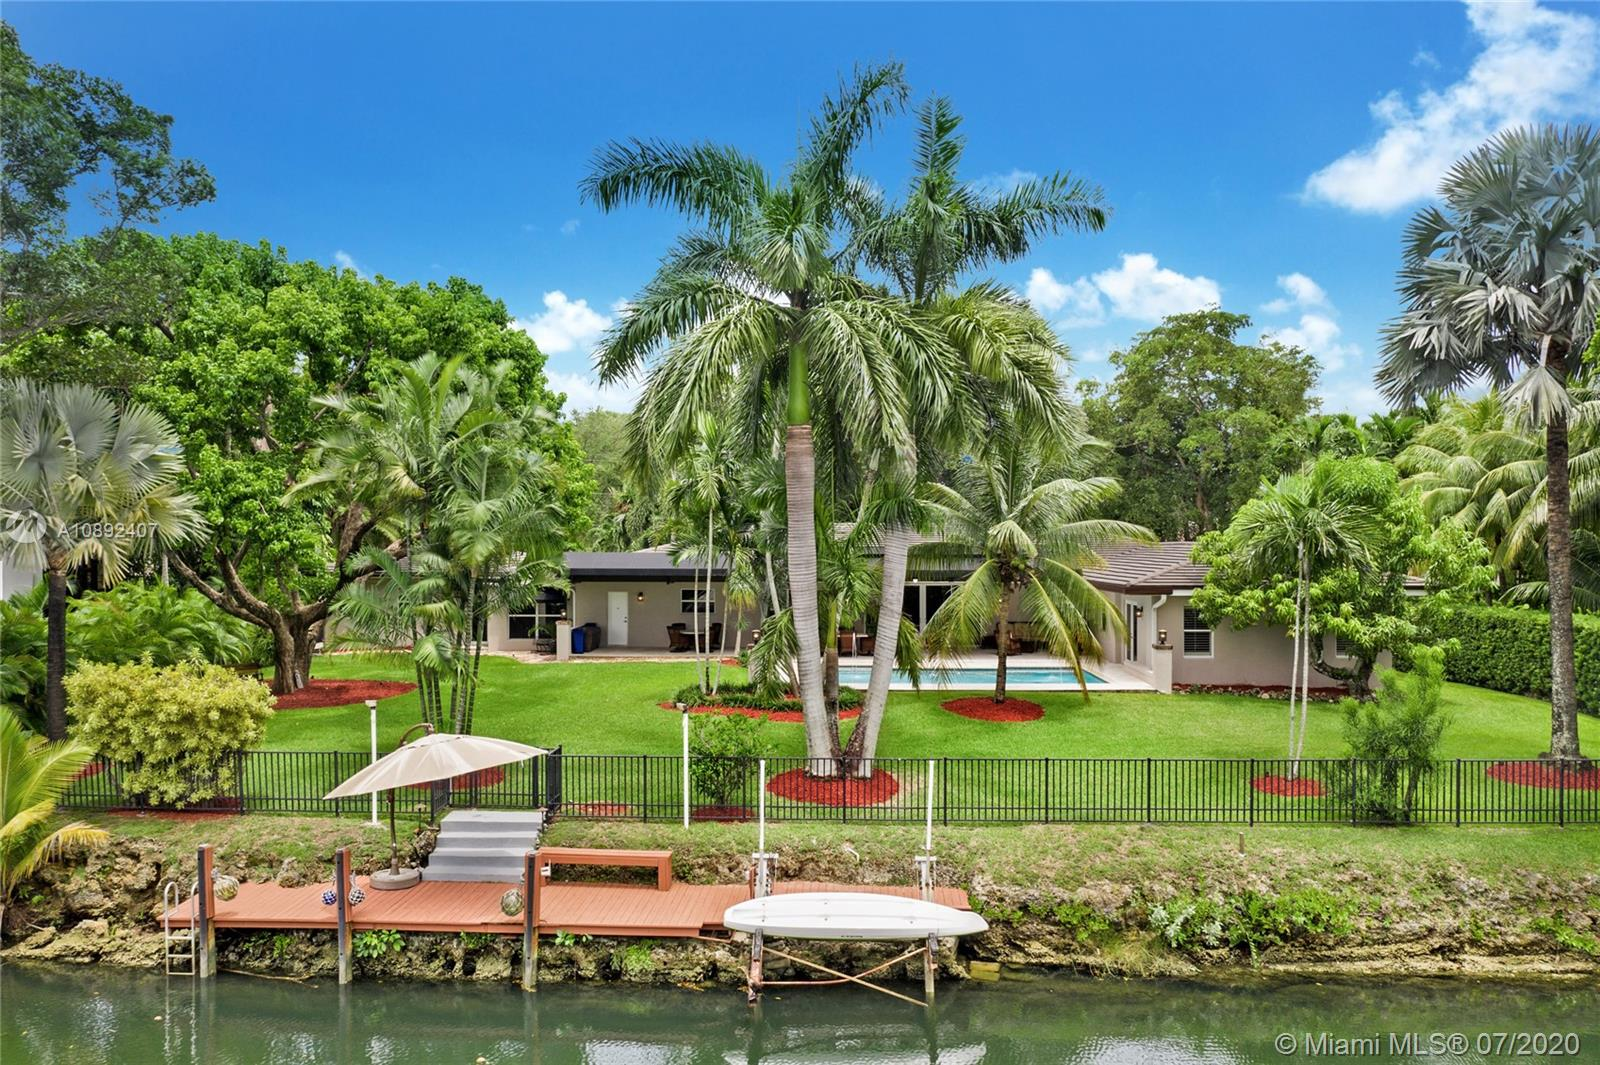 Located centrally in Coral Gables on the historic Granada blvd. This modern waterfront property is a 5 bedroom and 5.5 bath with 5073 sqft living area. The property offers a gated lot, an expansive backyard on the Gables waterway with ocean access, and a swimming pool area surrounded by a large fixed awning. It also features a private master suite, gourmet kitchen, large living/dining area, storage room, and a large den. The property is located walking distance from Riviera country club and the university of Miami, only minutes away from the Biltmore Hotel. Its beautiful natural landscaping offers tremendous privacy.